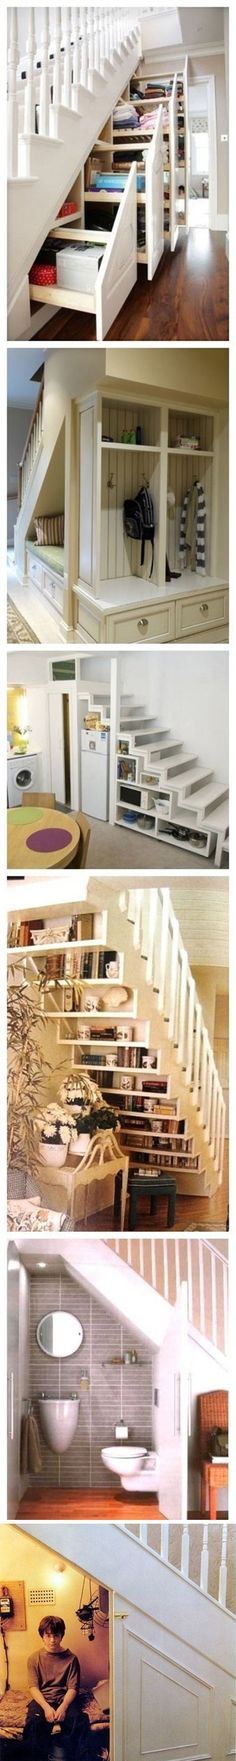 """I always hated all the wasted space under stairs.especially like the open shelves & the bed (great for a guest """"room"""" spot under stairs in a finished basement) & the.well guess I really like them all! Wish I had stairs! Home Design, Interior Design, Design Ideas, Room Interior, Design Design, Interior Ideas, My Dream Home, Home Projects, Future House"""